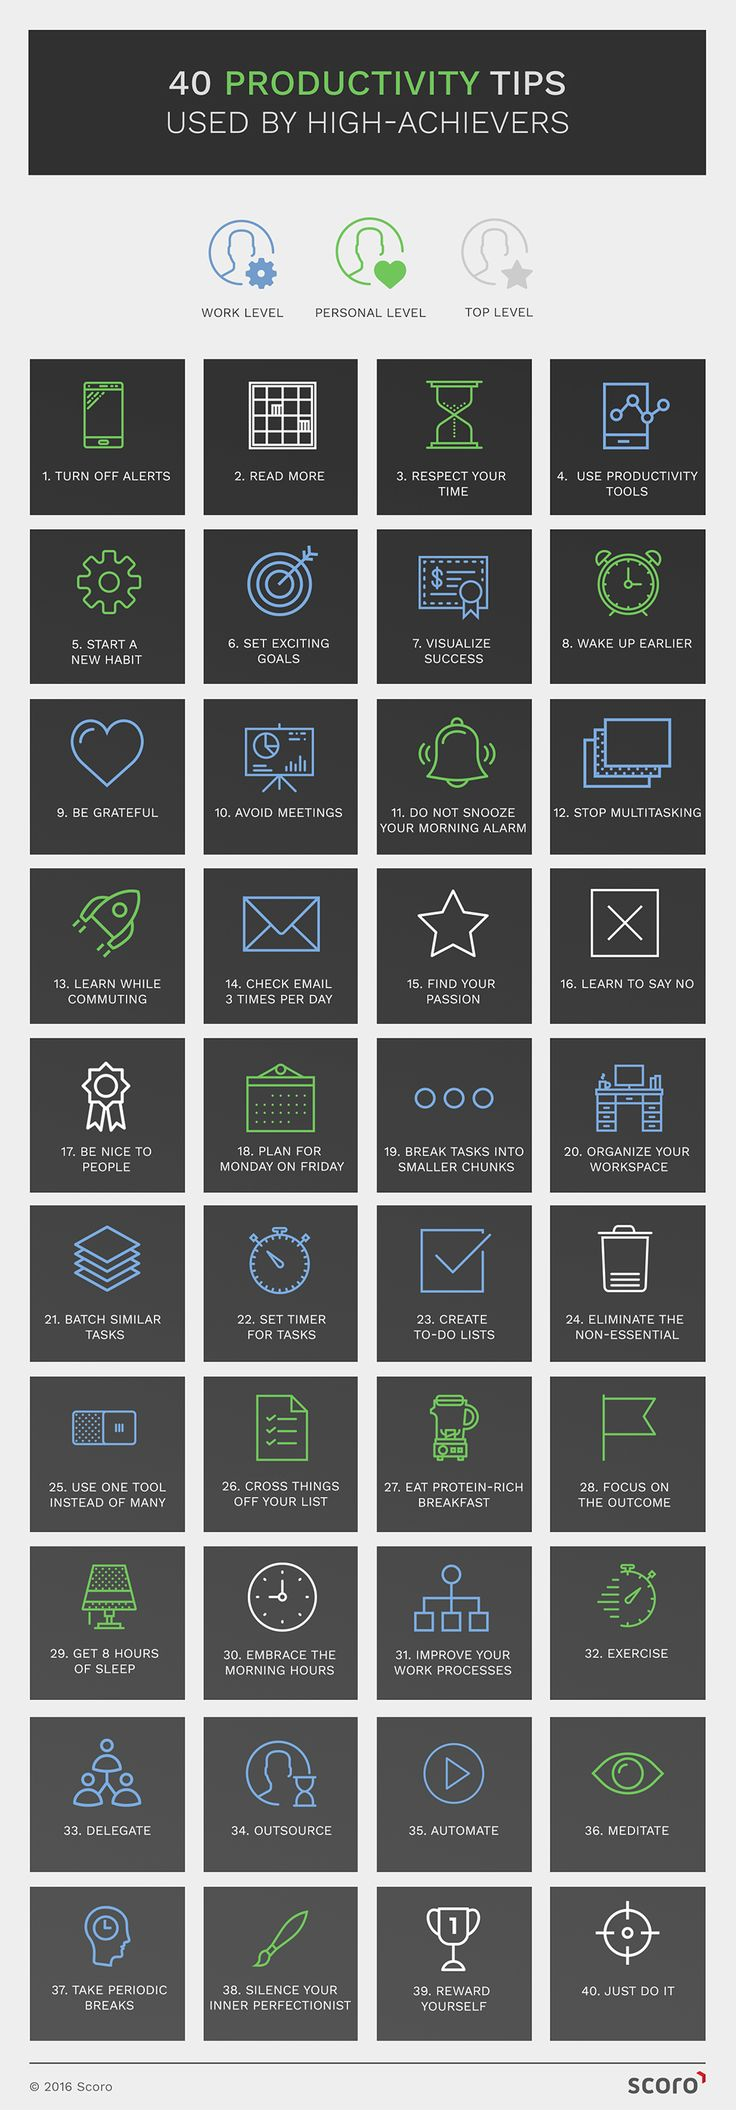 40 Productivity Hacks Used by High Achievers [Infographic]